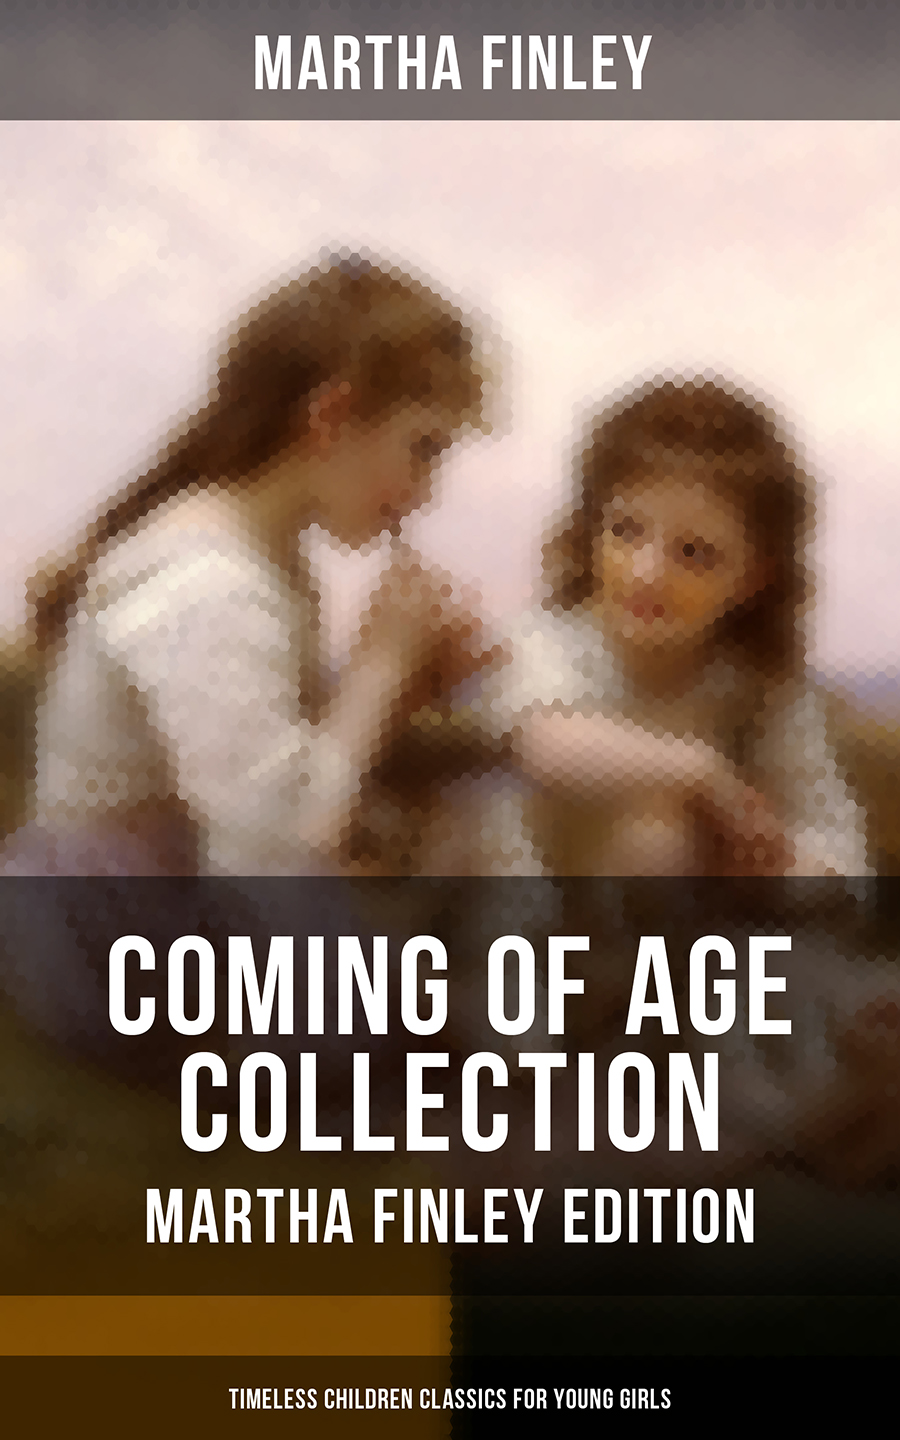 Finley Martha COMING OF AGE COLLECTION - Martha Finley Edition (Timeless Children Classics For Young Girls) dark age dark age acedia limited edition